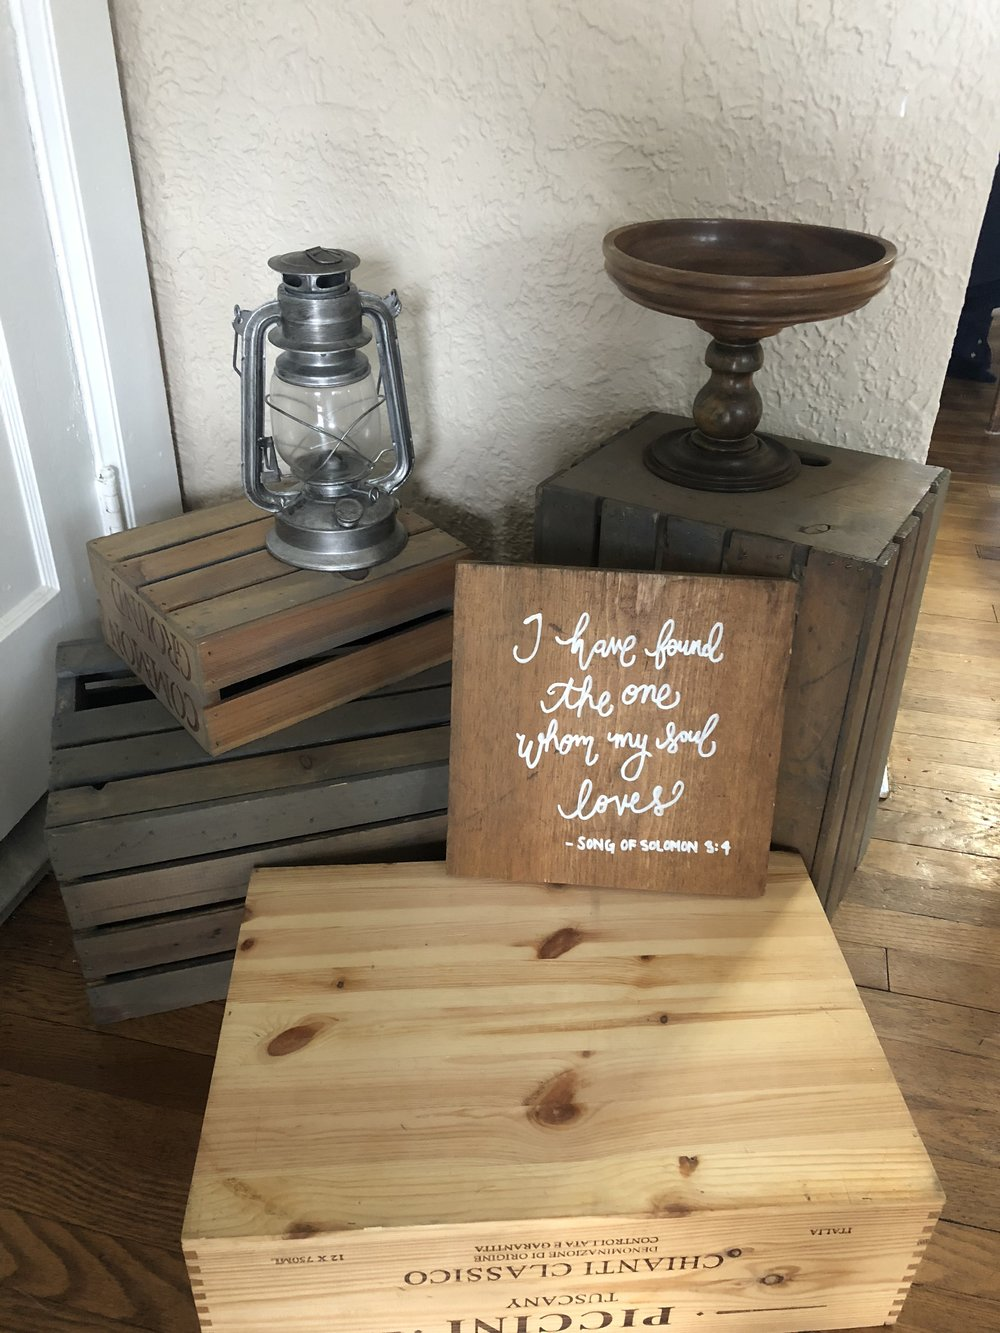 """Miscellaneous Items - - 1 Silver Lantern- 1 Wooden Wedding Verse Sign """"I have found the one whom my soul loves""""- 1 wooden pedastal plate"""